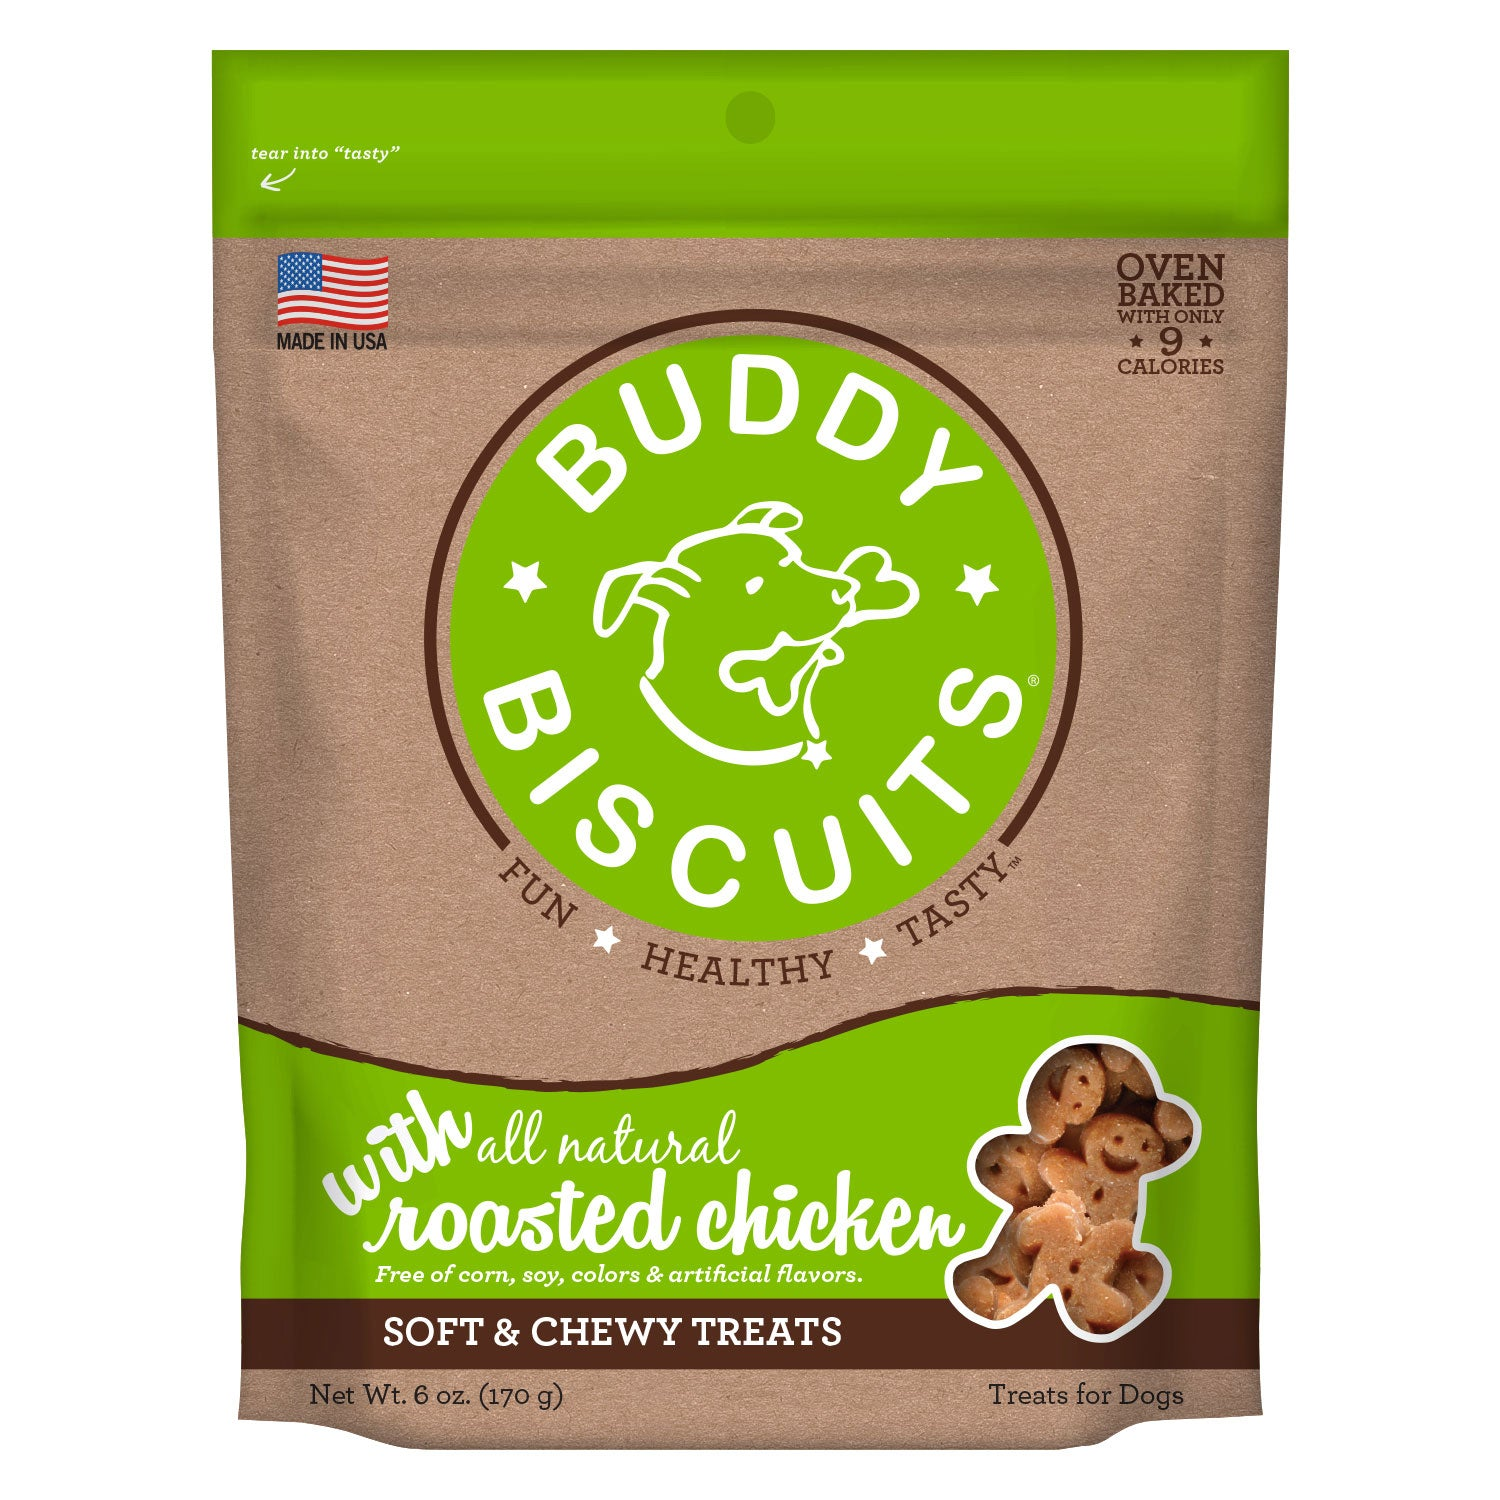 Buddy Biscuits Original Soft and Chewy Dog Treats Roasted Chicken 6 ounces Dog Treats and Bones - London the Local